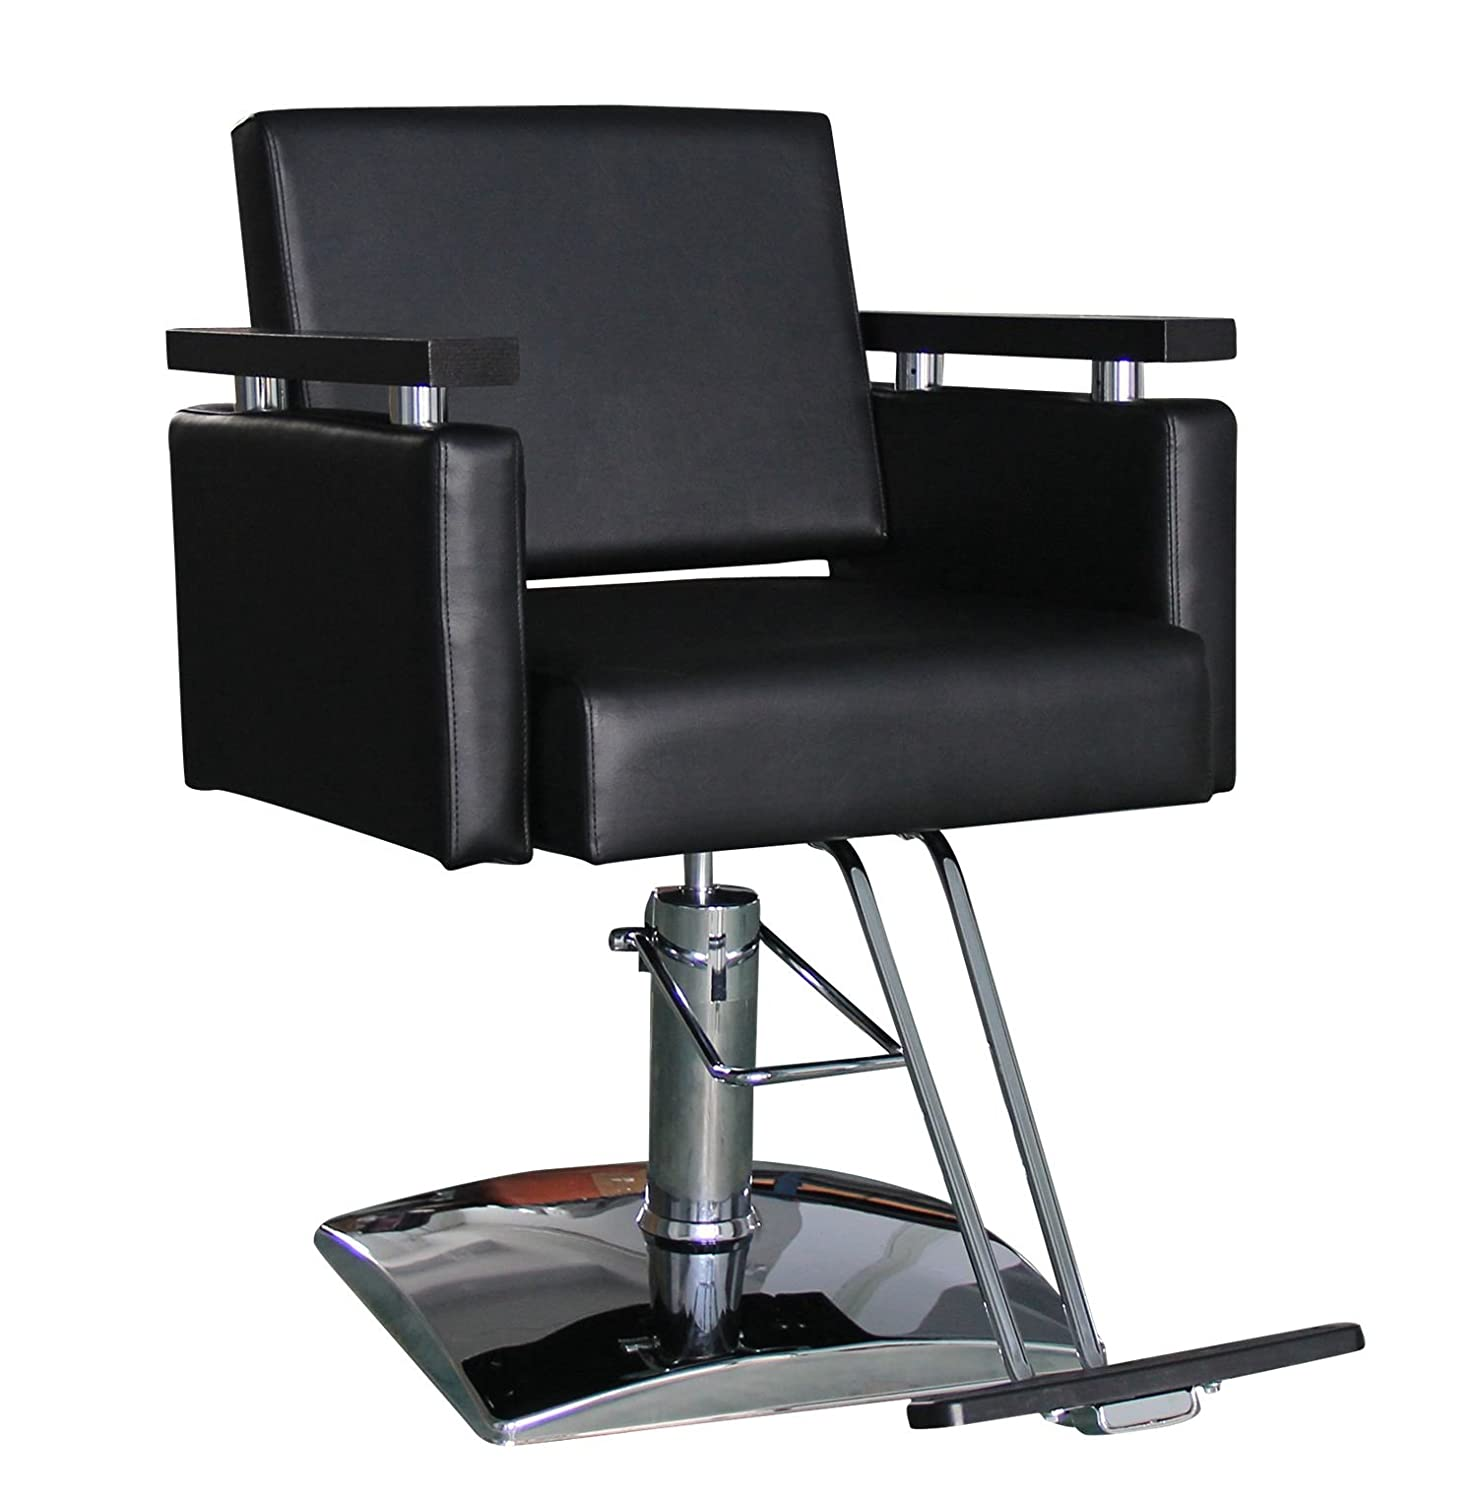 Barber chairs campoeng mr tsu koken barber chairs the for Salon bench